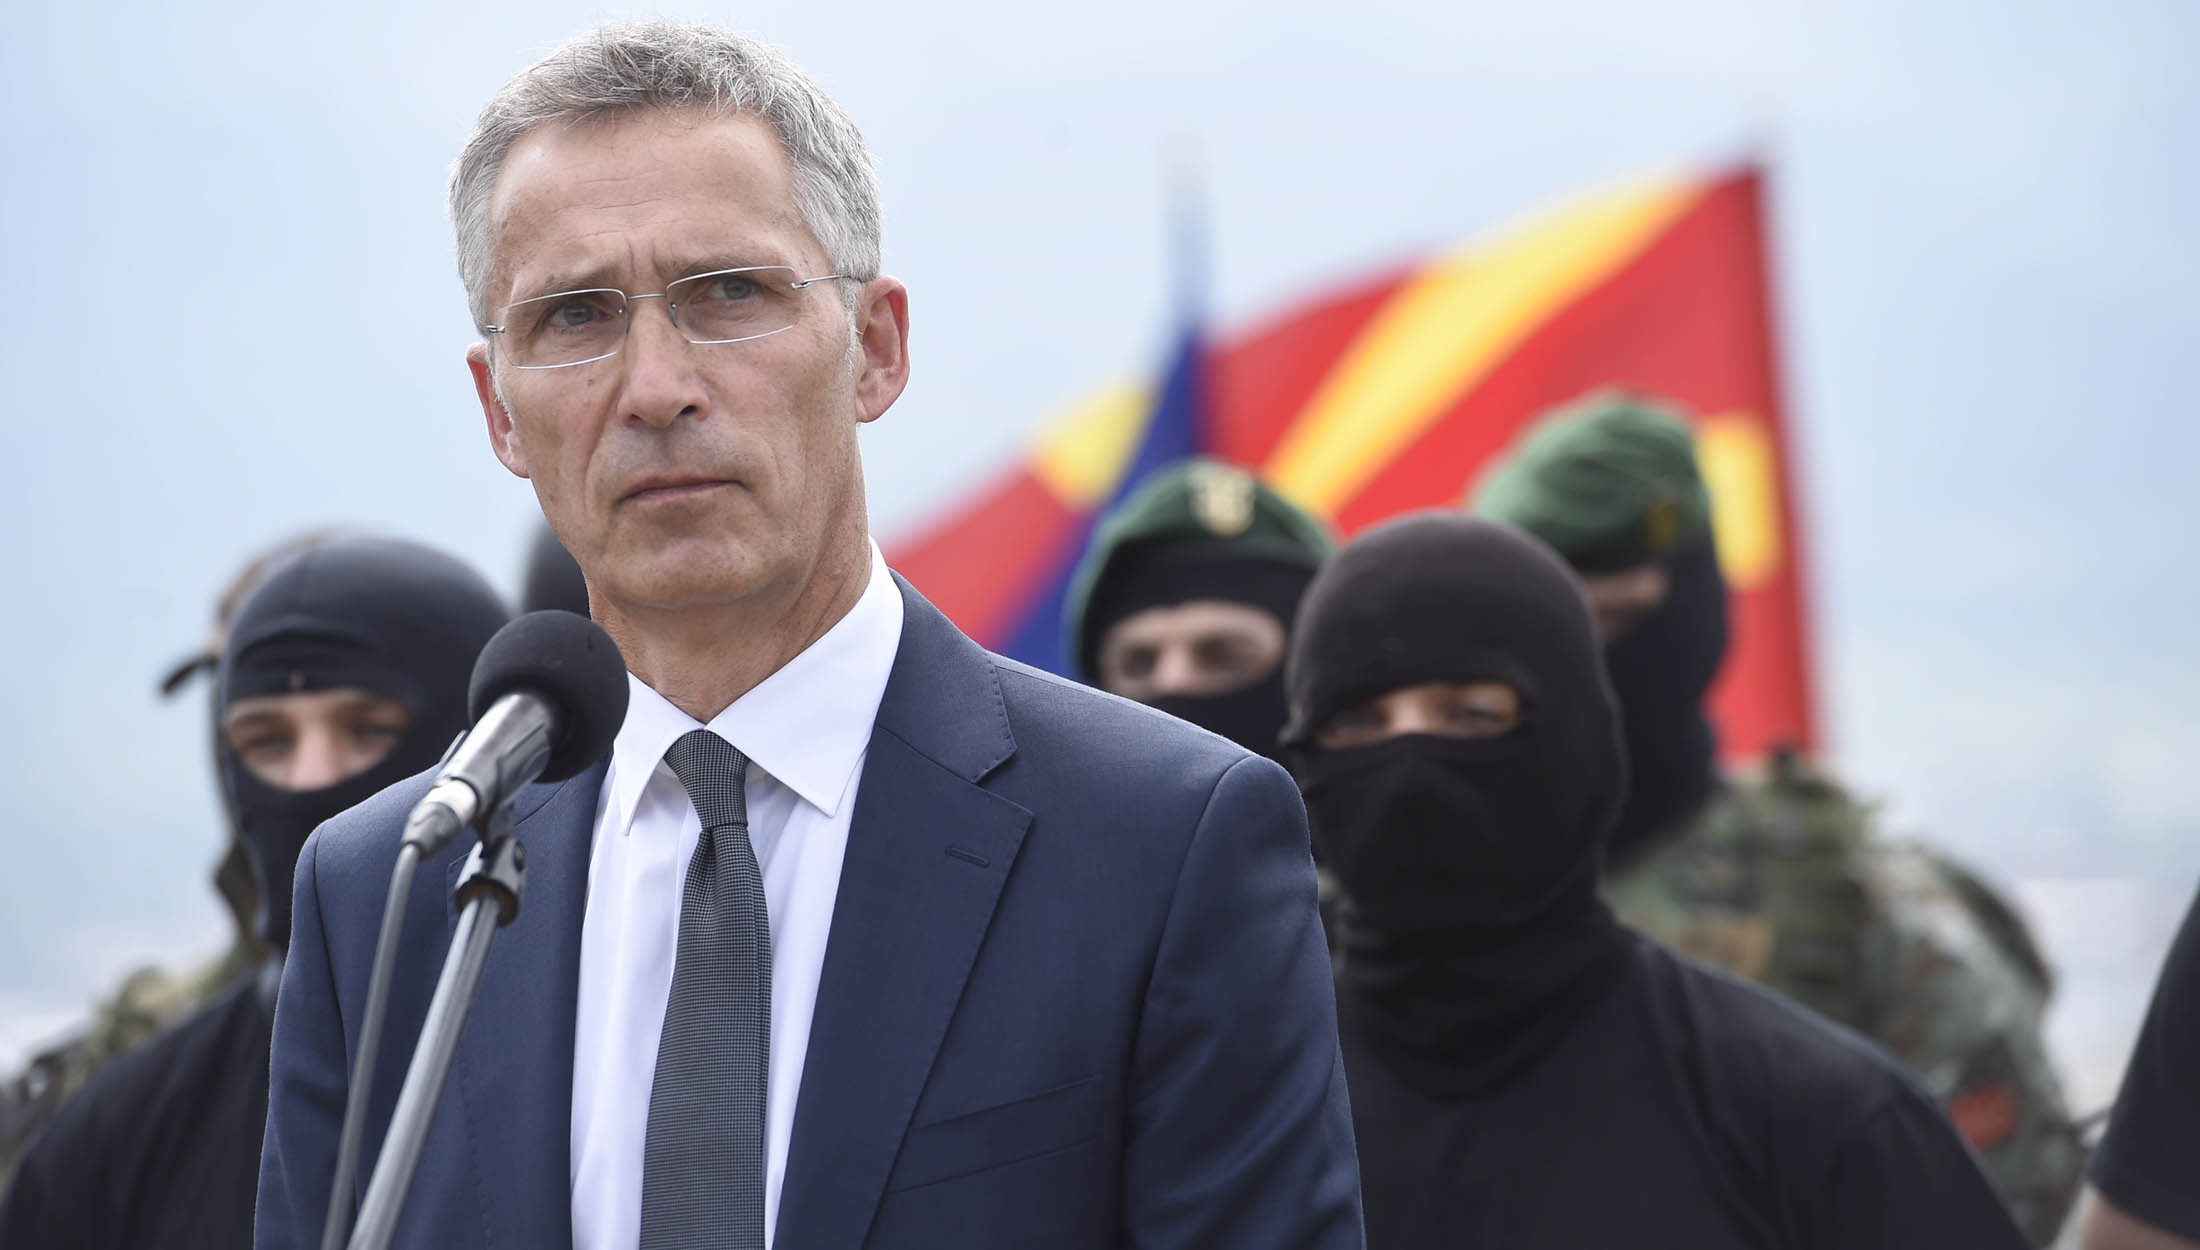 NATO Secretary General Jens Stoltenberg visits the Ilinden barracks and thanks the armed forces for their service and contributions to NATO deployments